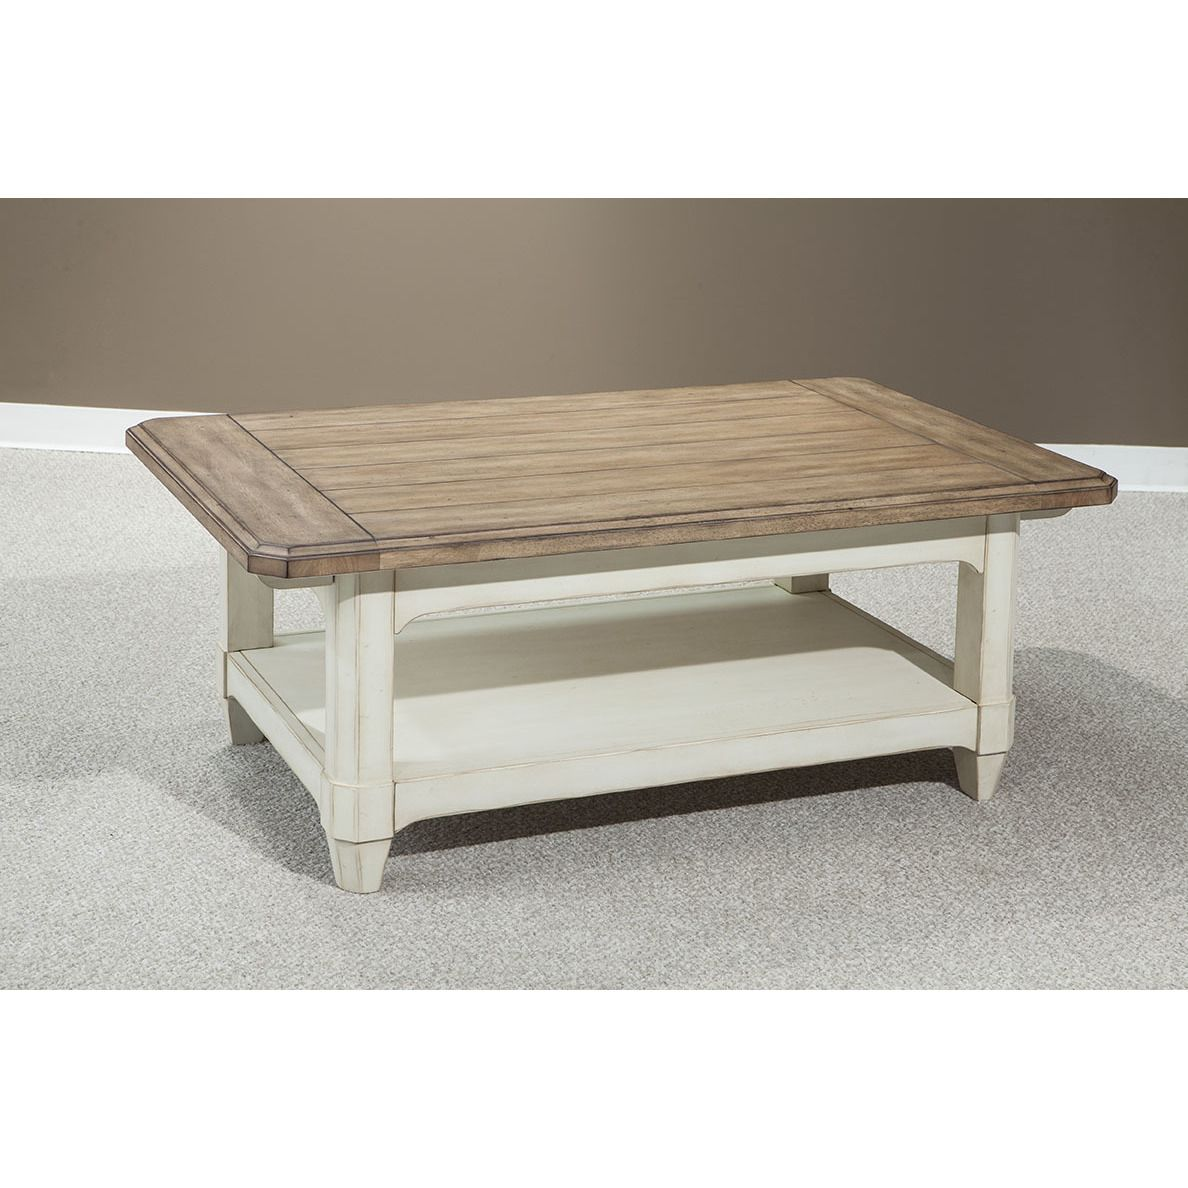 Somette Panama Jack Millbrook 50-inch Rectangular Cocktail Table